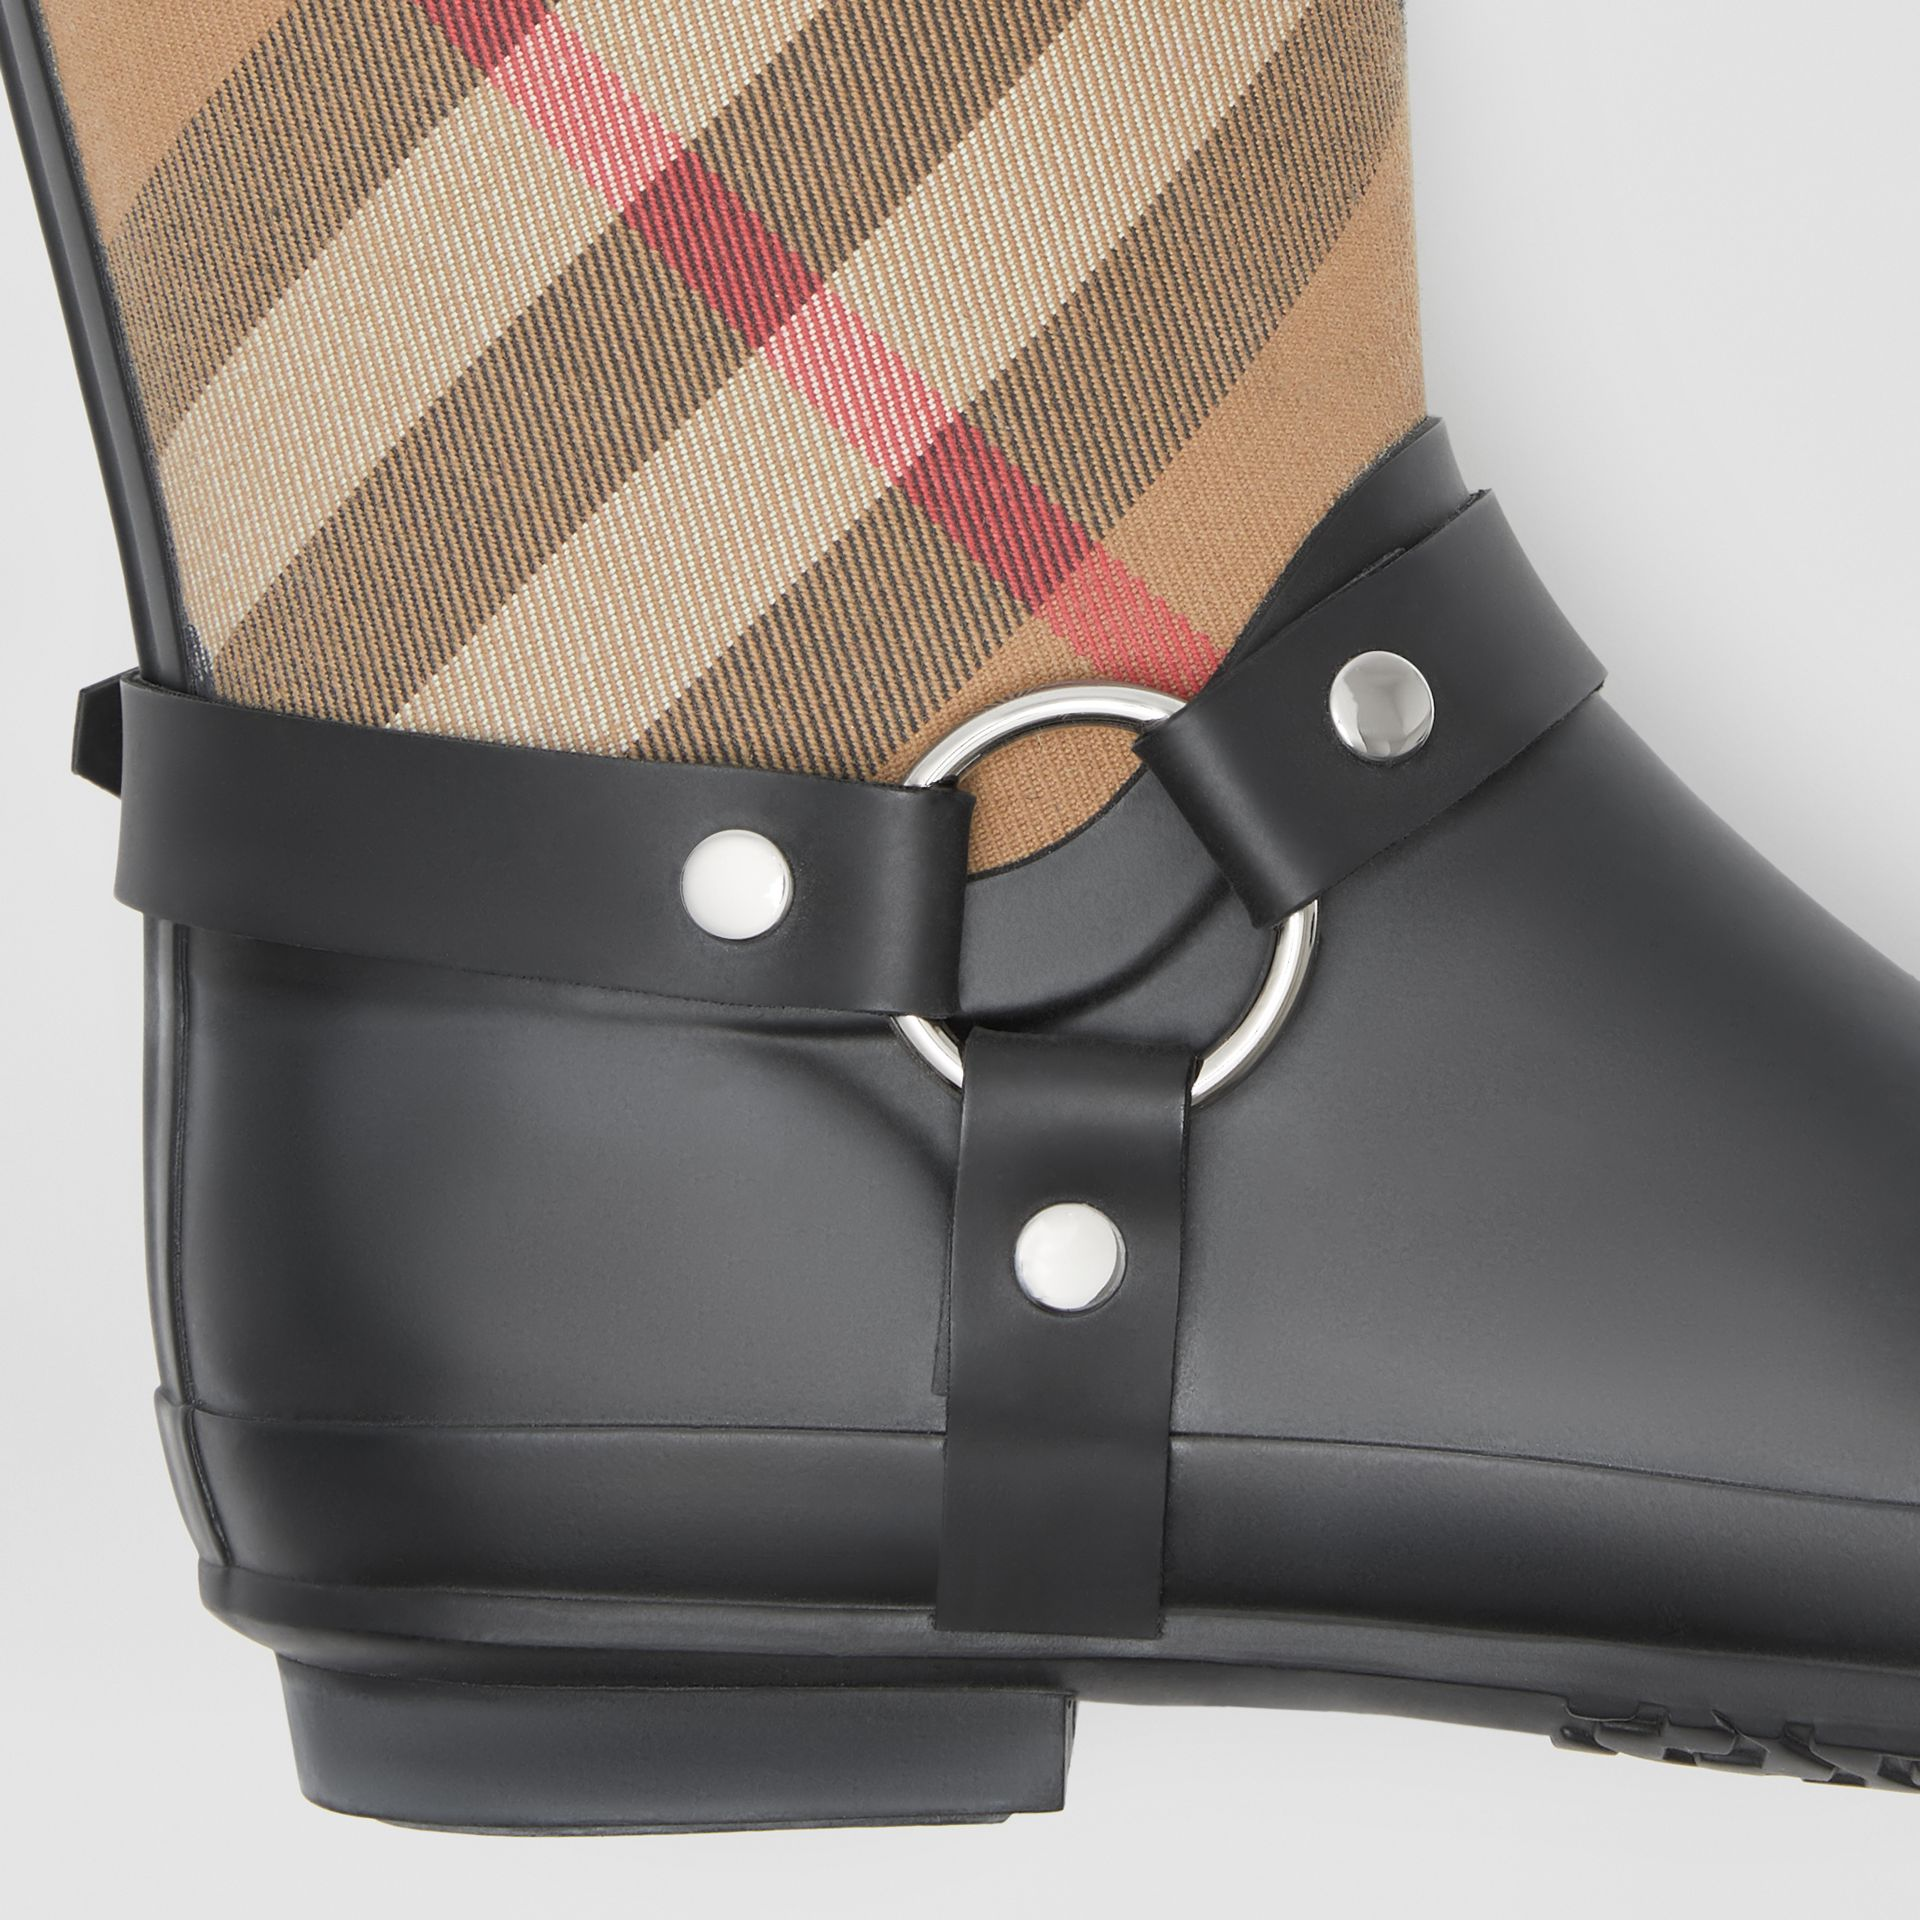 Buckle and Strap Detail Check Rain Boots in House Check/black - Women | Burberry Hong Kong S.A.R - gallery image 1